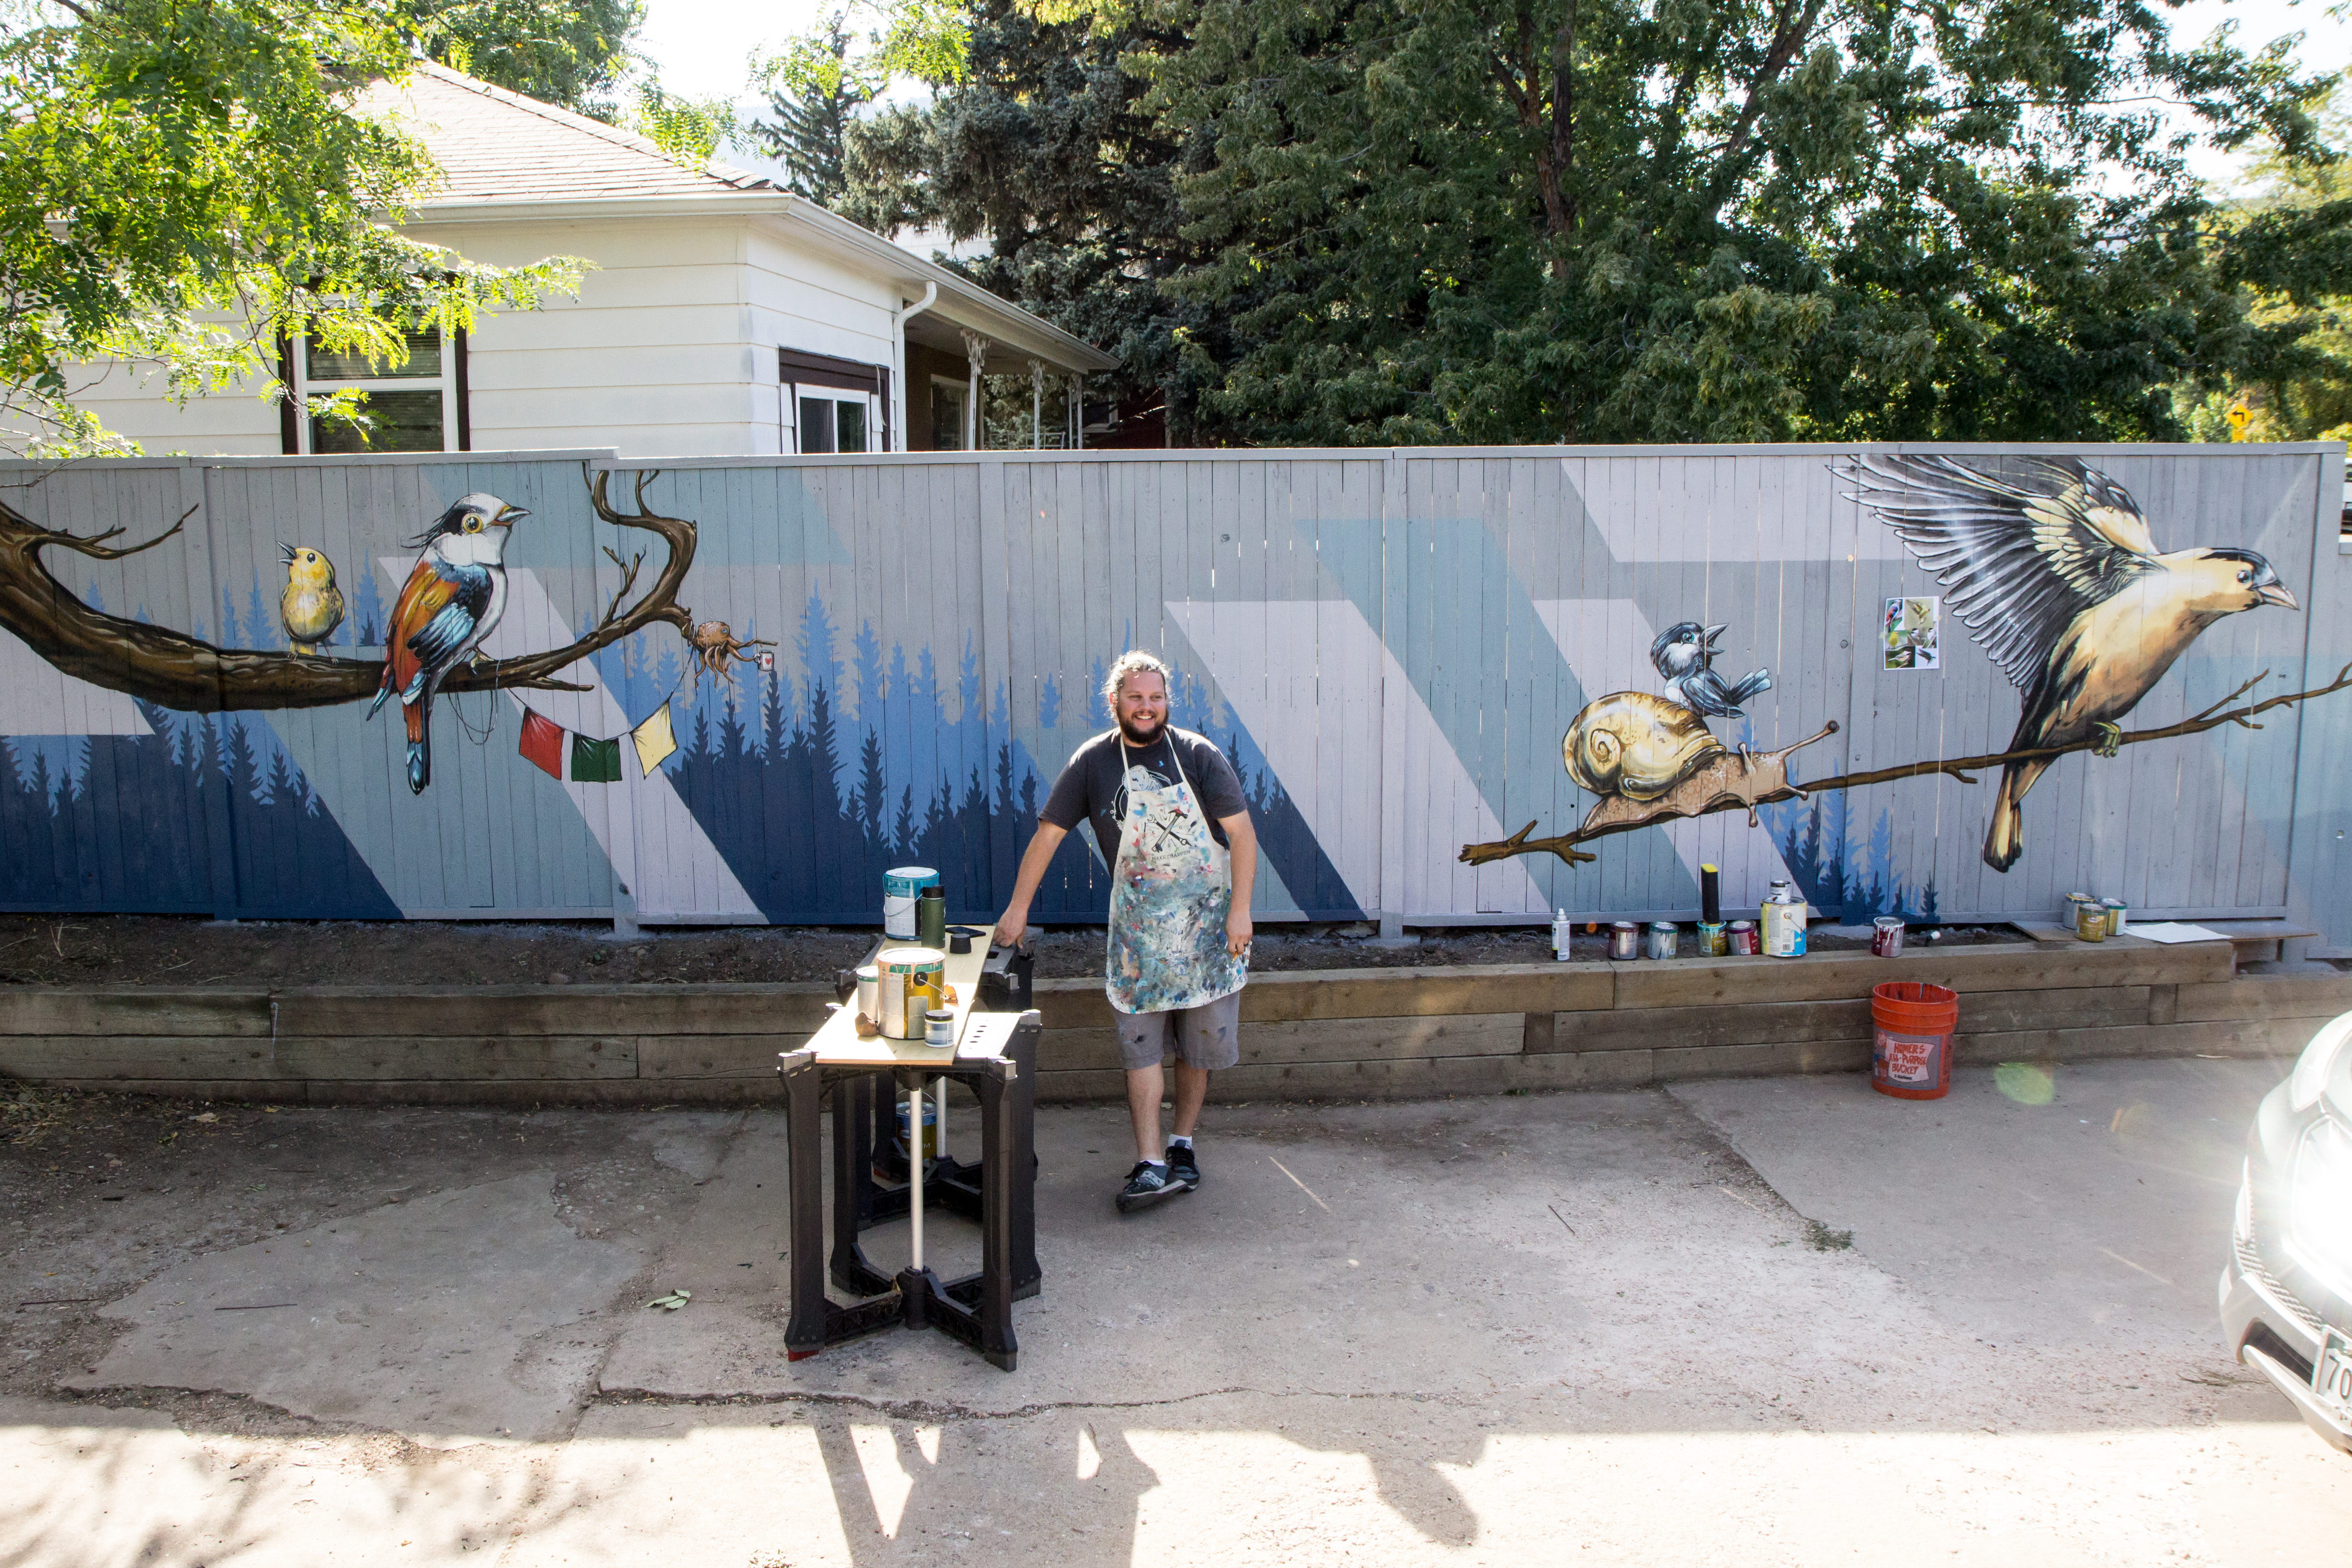 Mural by Patrick Maxcy